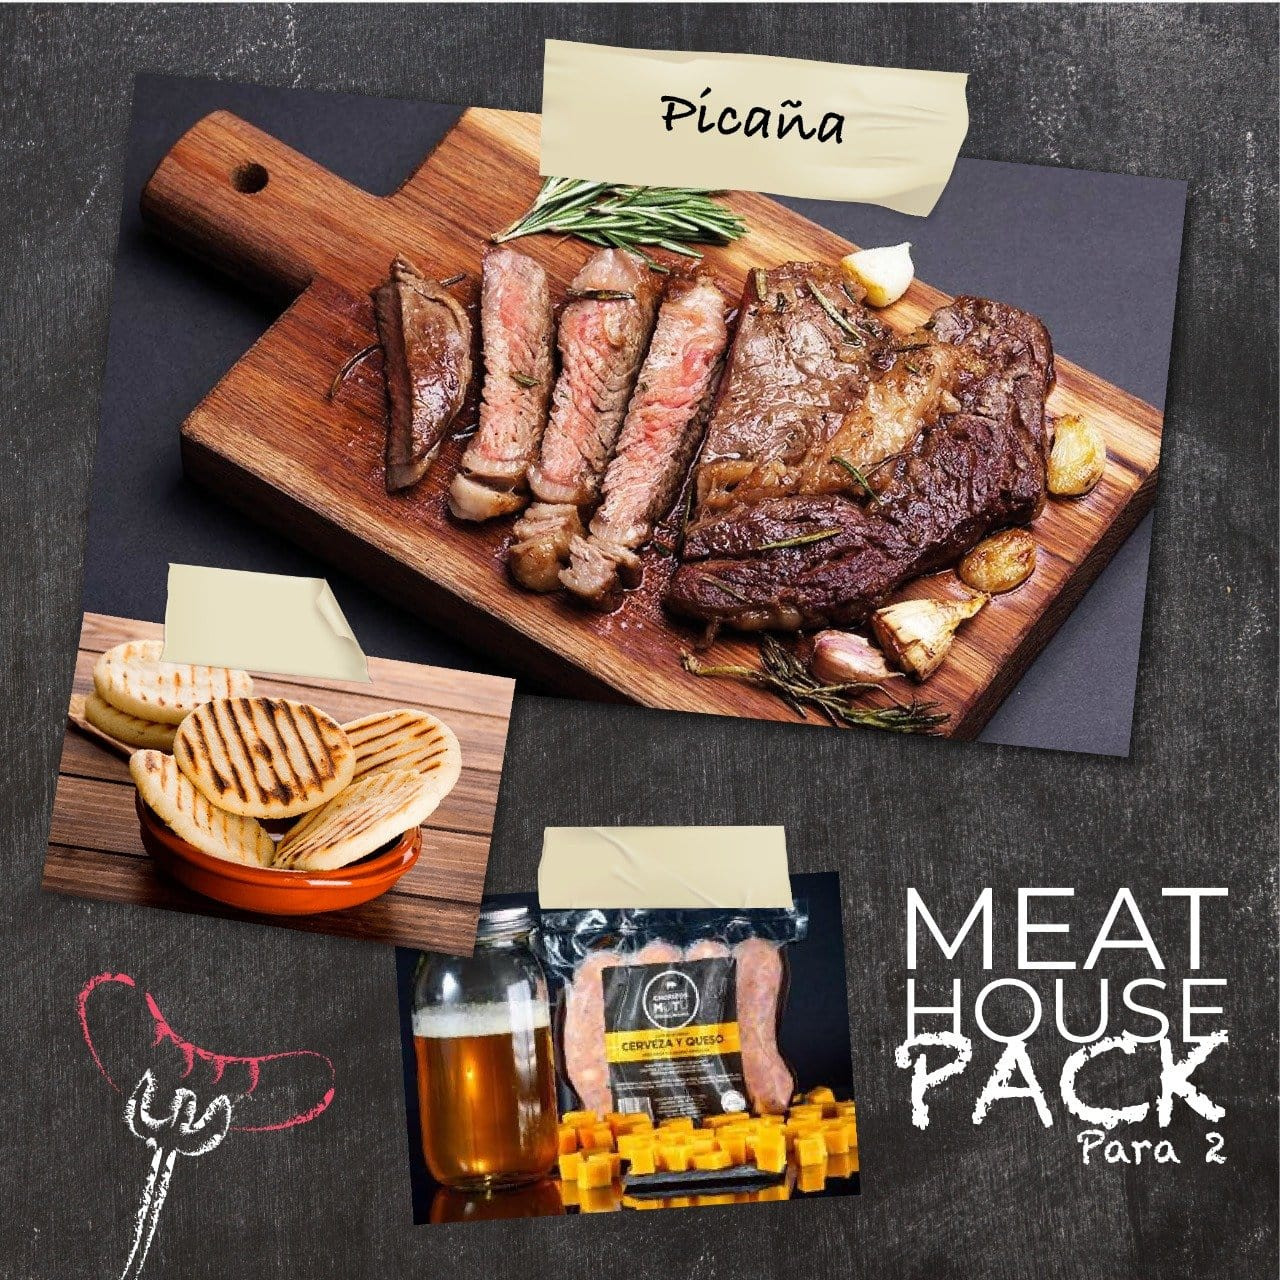 Meat Pack para 2